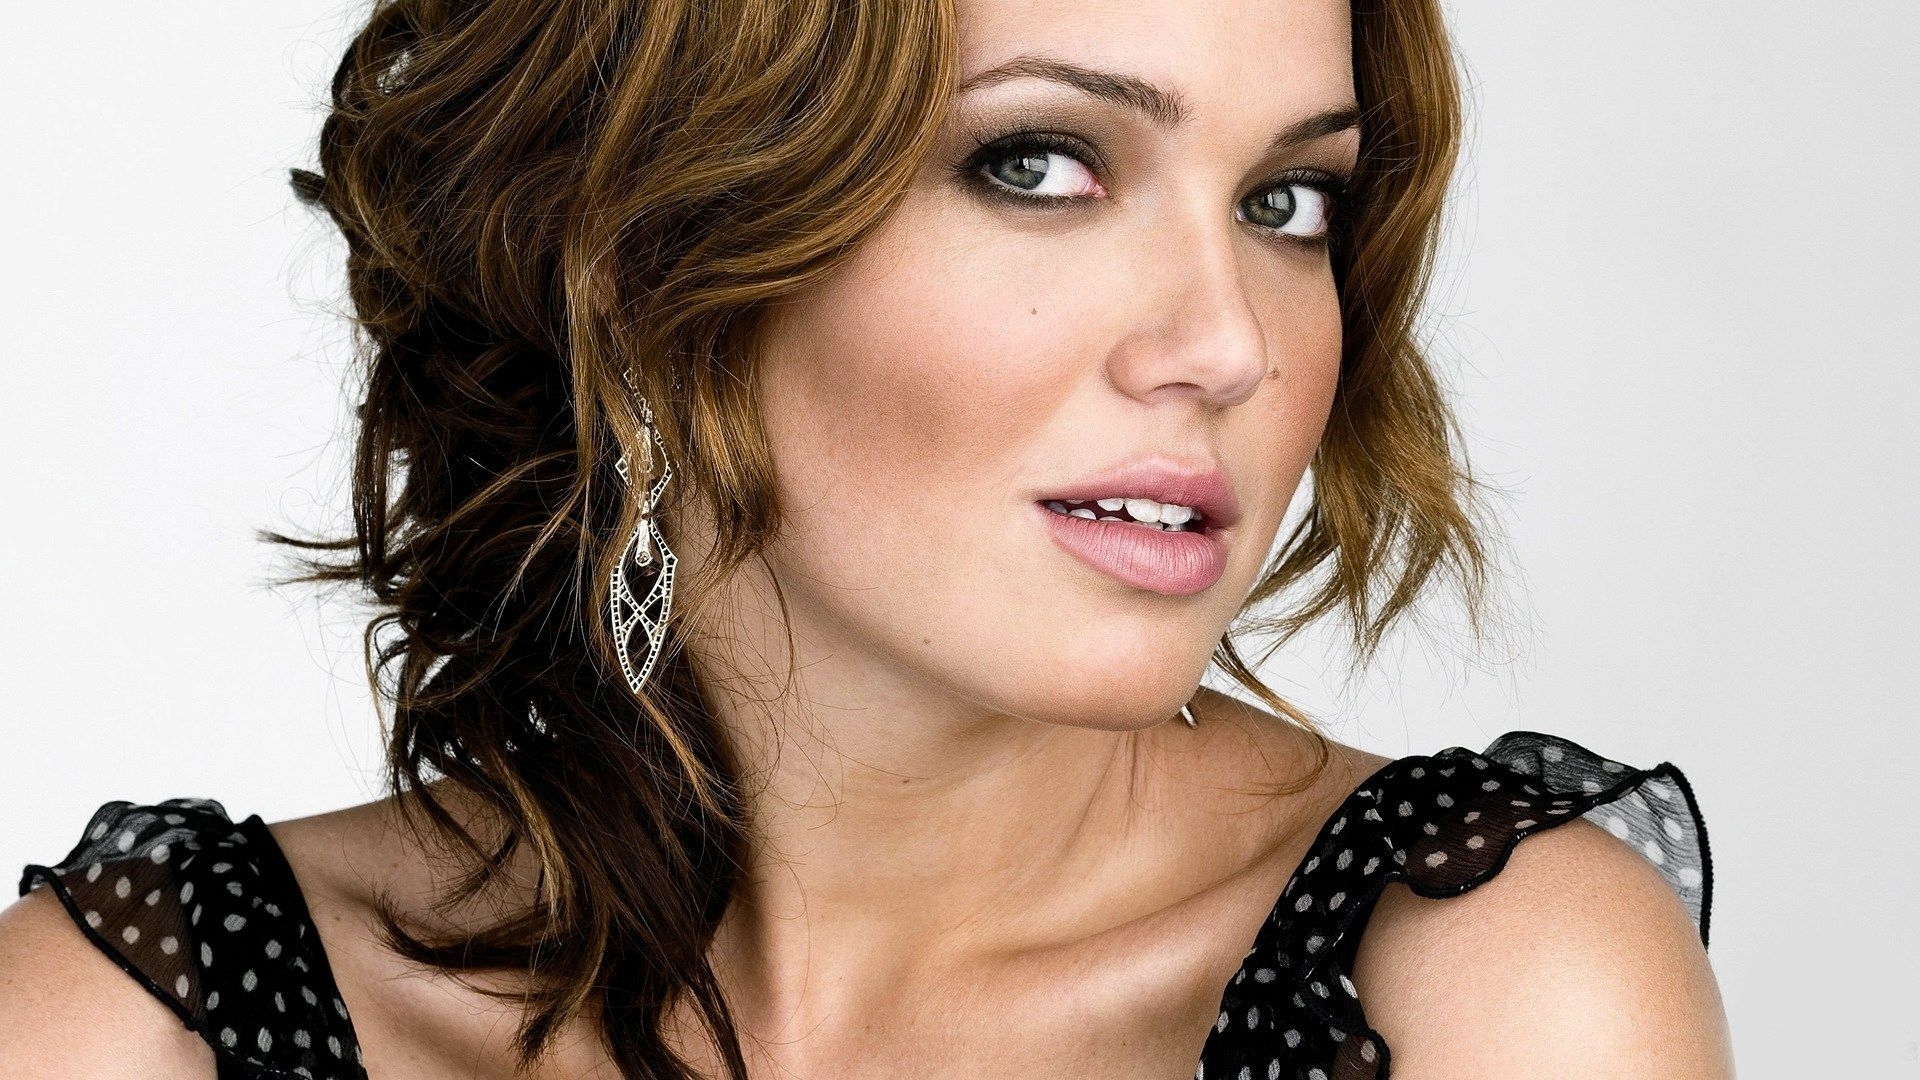 What Happened to Mandy Moore - News & Updates - The Gazette Review